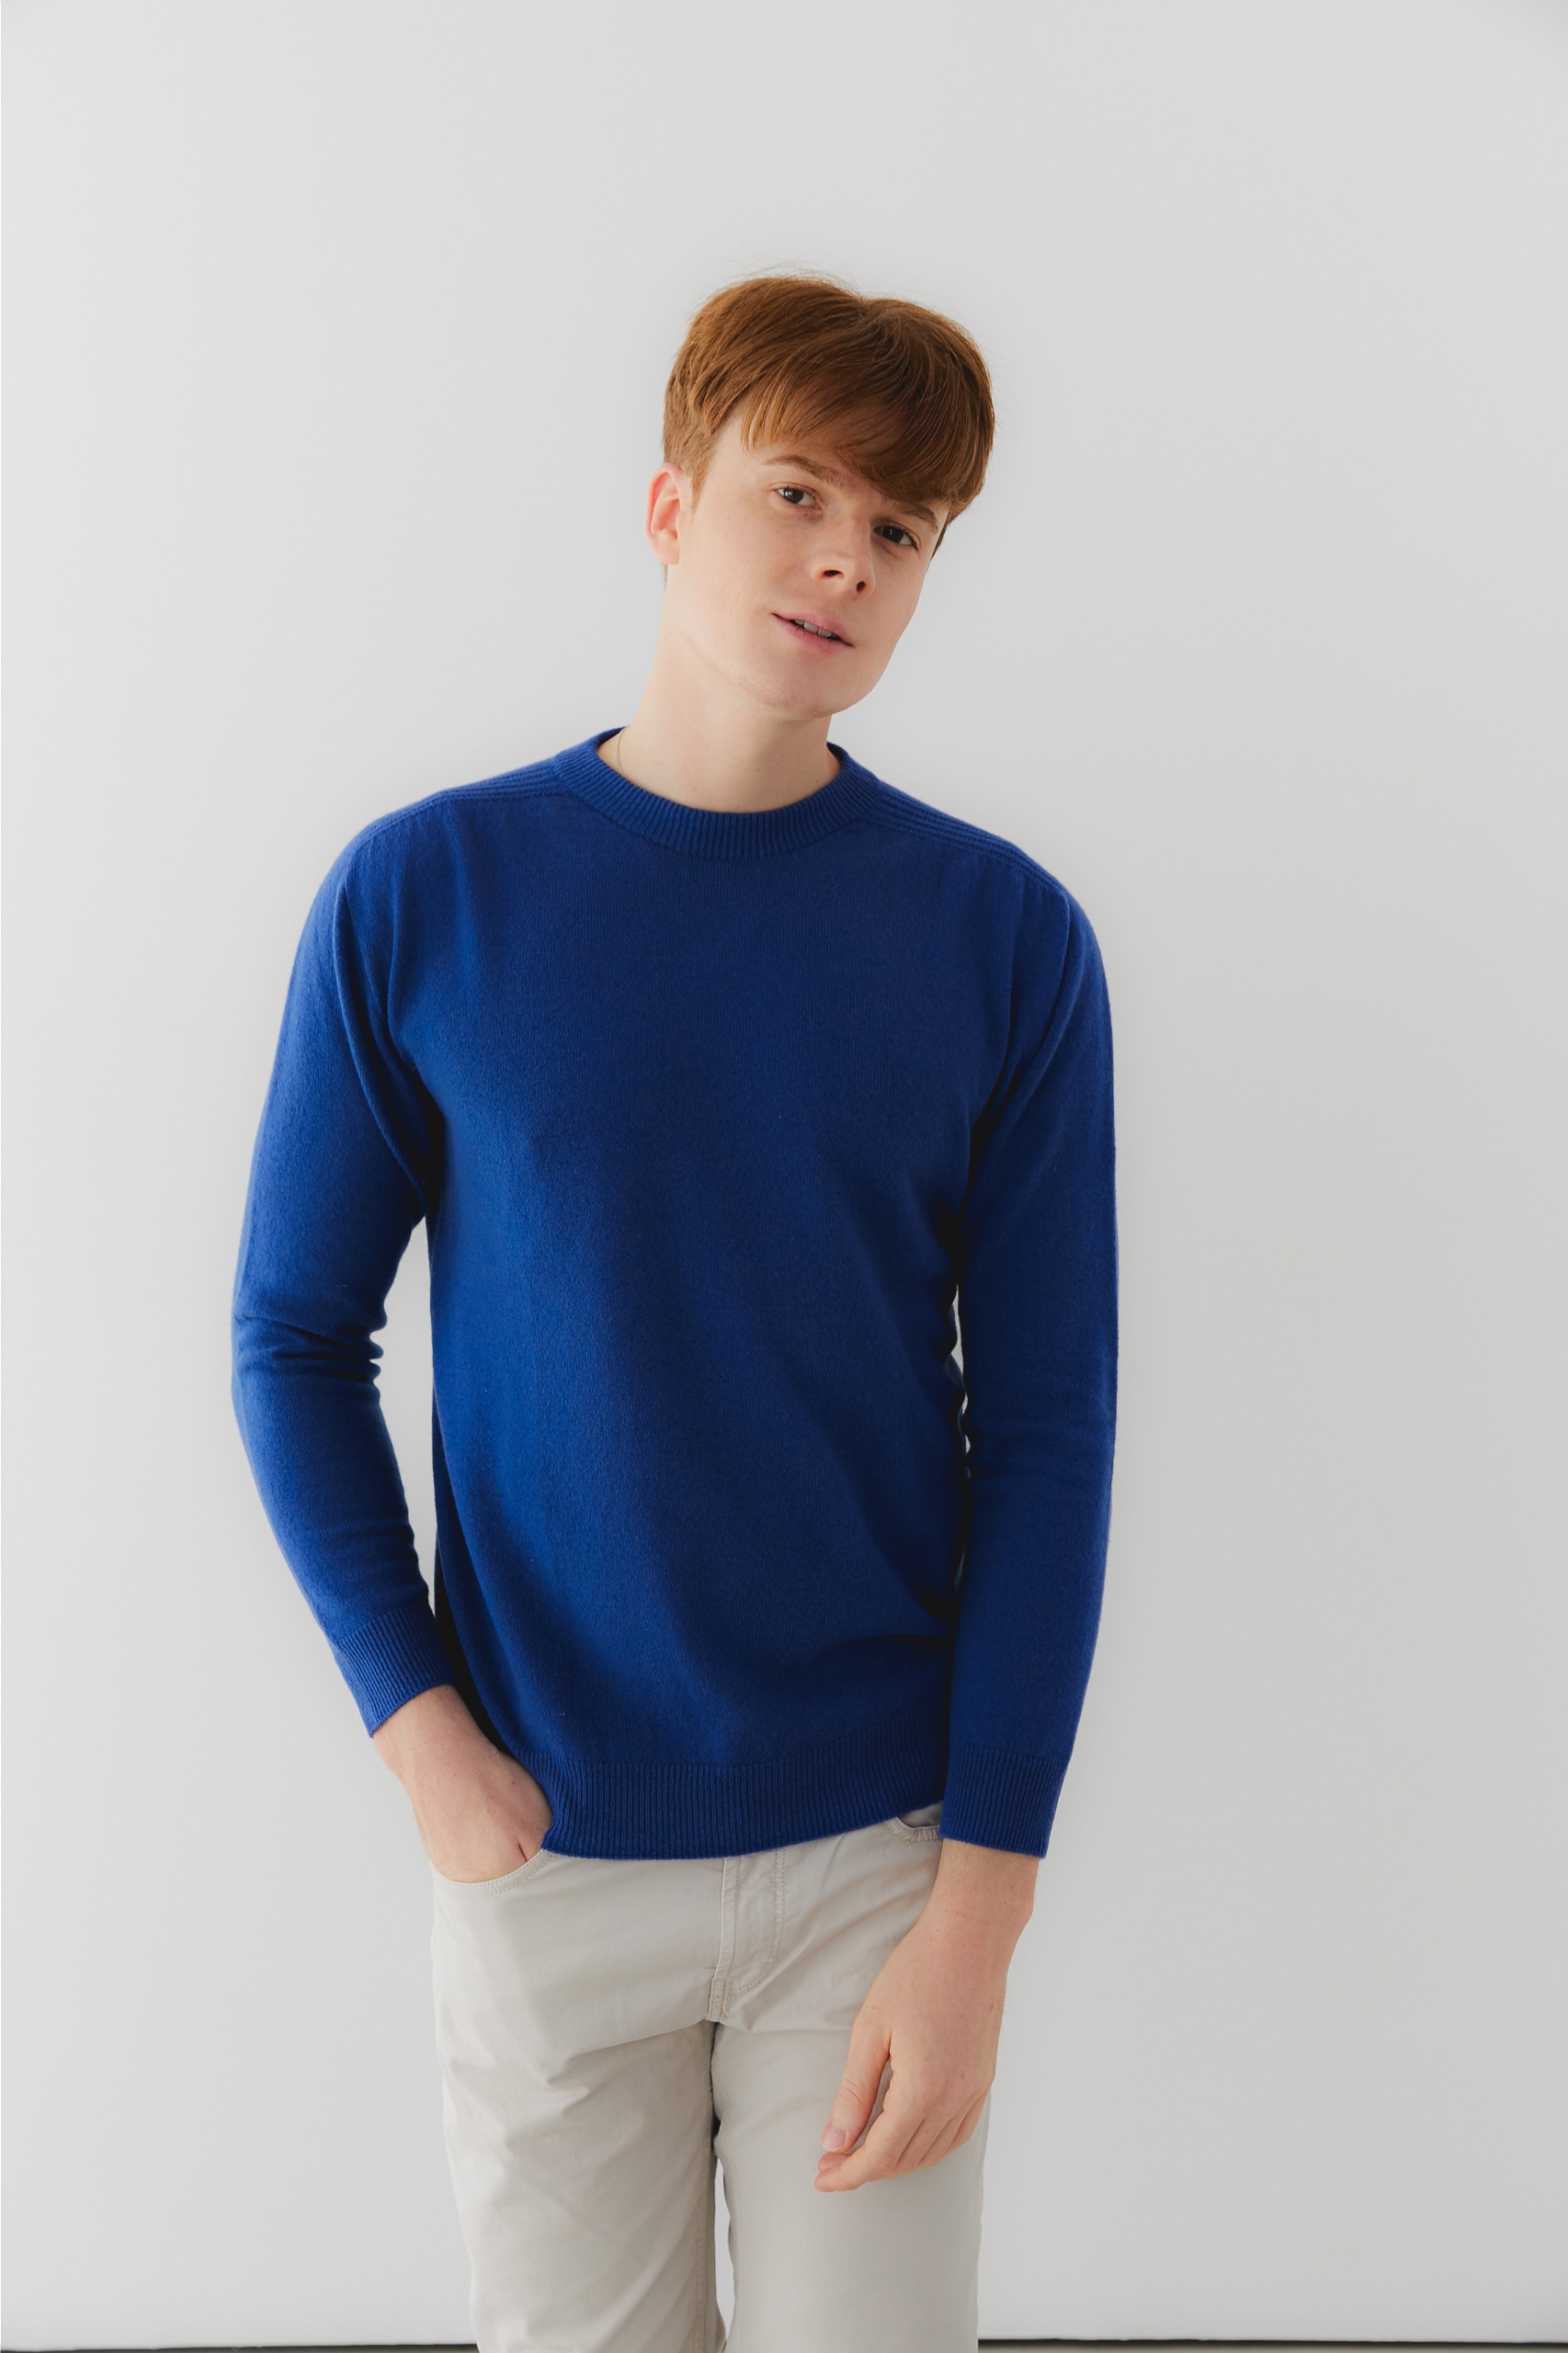 프리미엄 캐시미어 100 남성 라운드넥 스웨터 [Pure cashmere100 whole-garment knitting roundneck pullover - Royal blue]